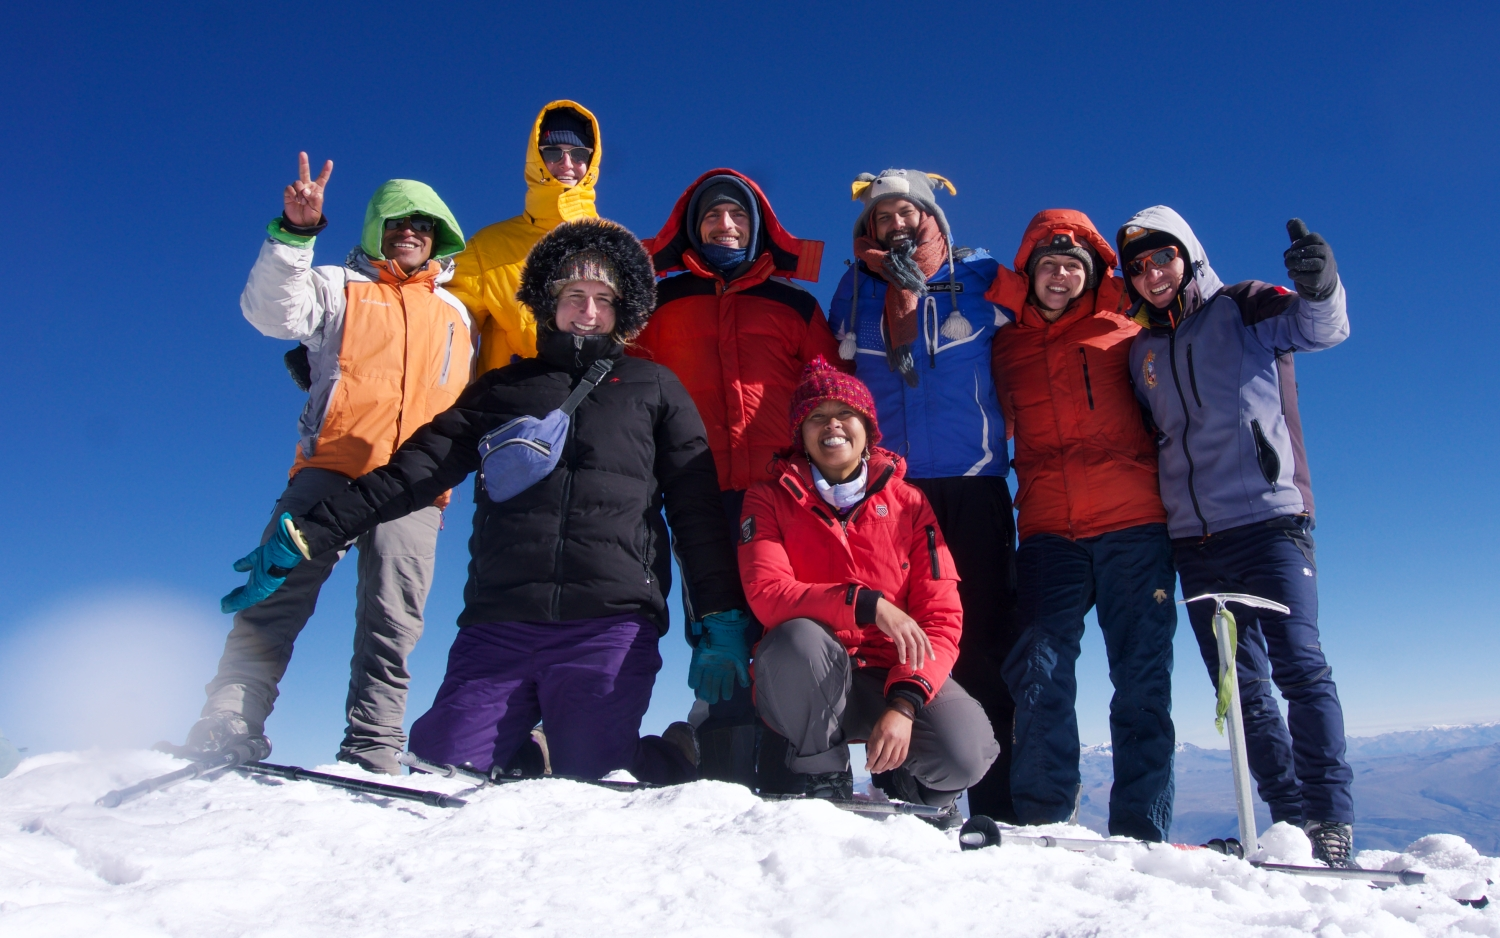 The Chachani Squad that made it to the summit with our two guides: New Zealand, the UK, the USA, Germany and Peru represented!